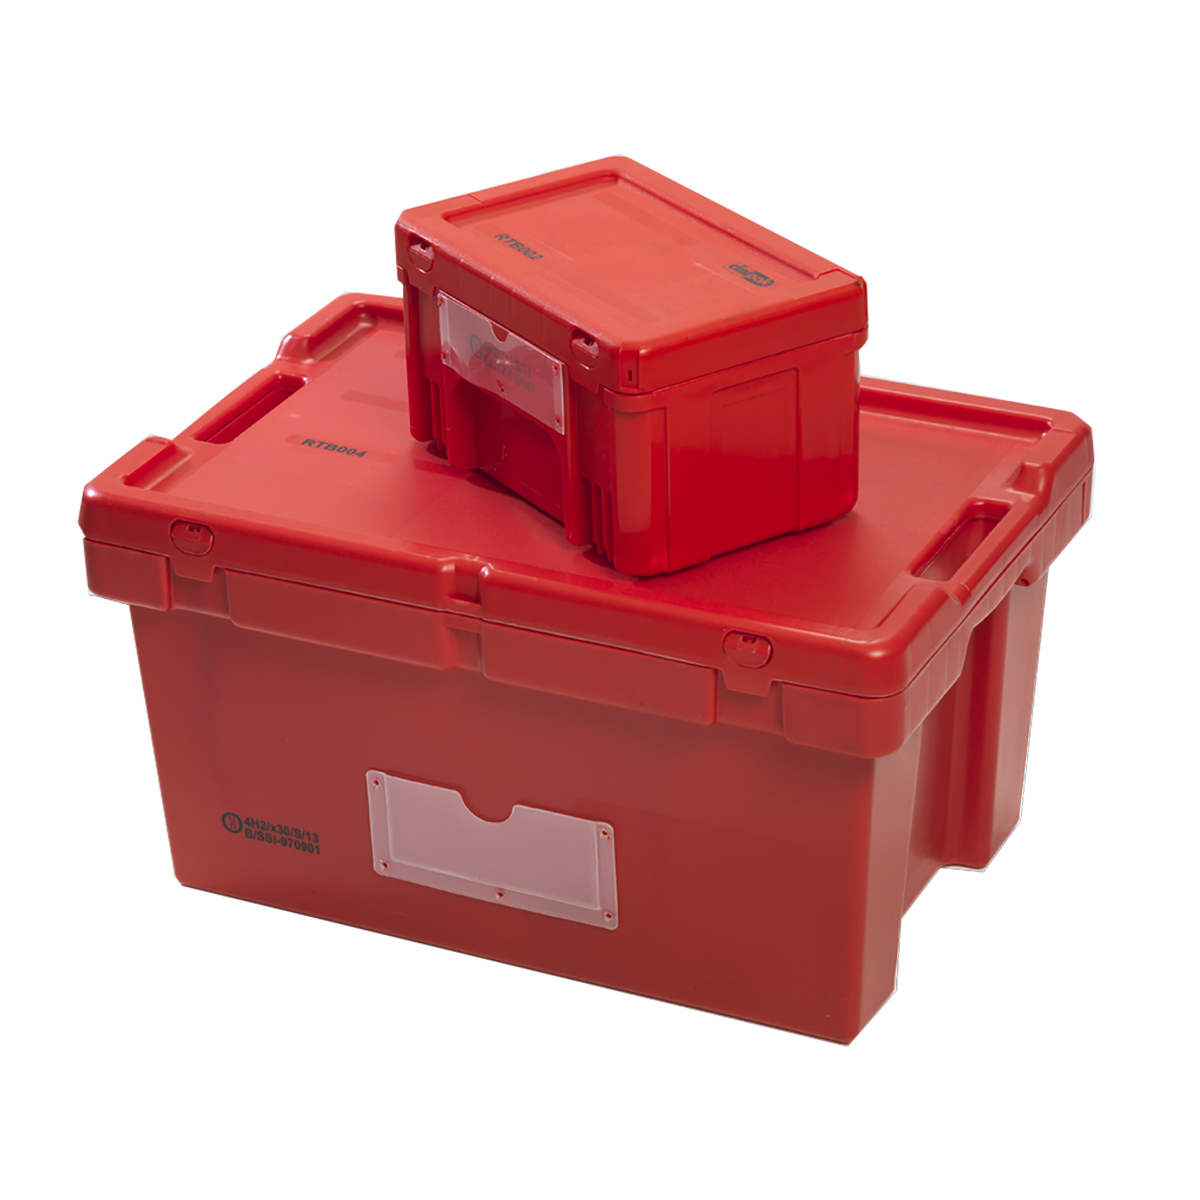 Red Transport Boxes Image